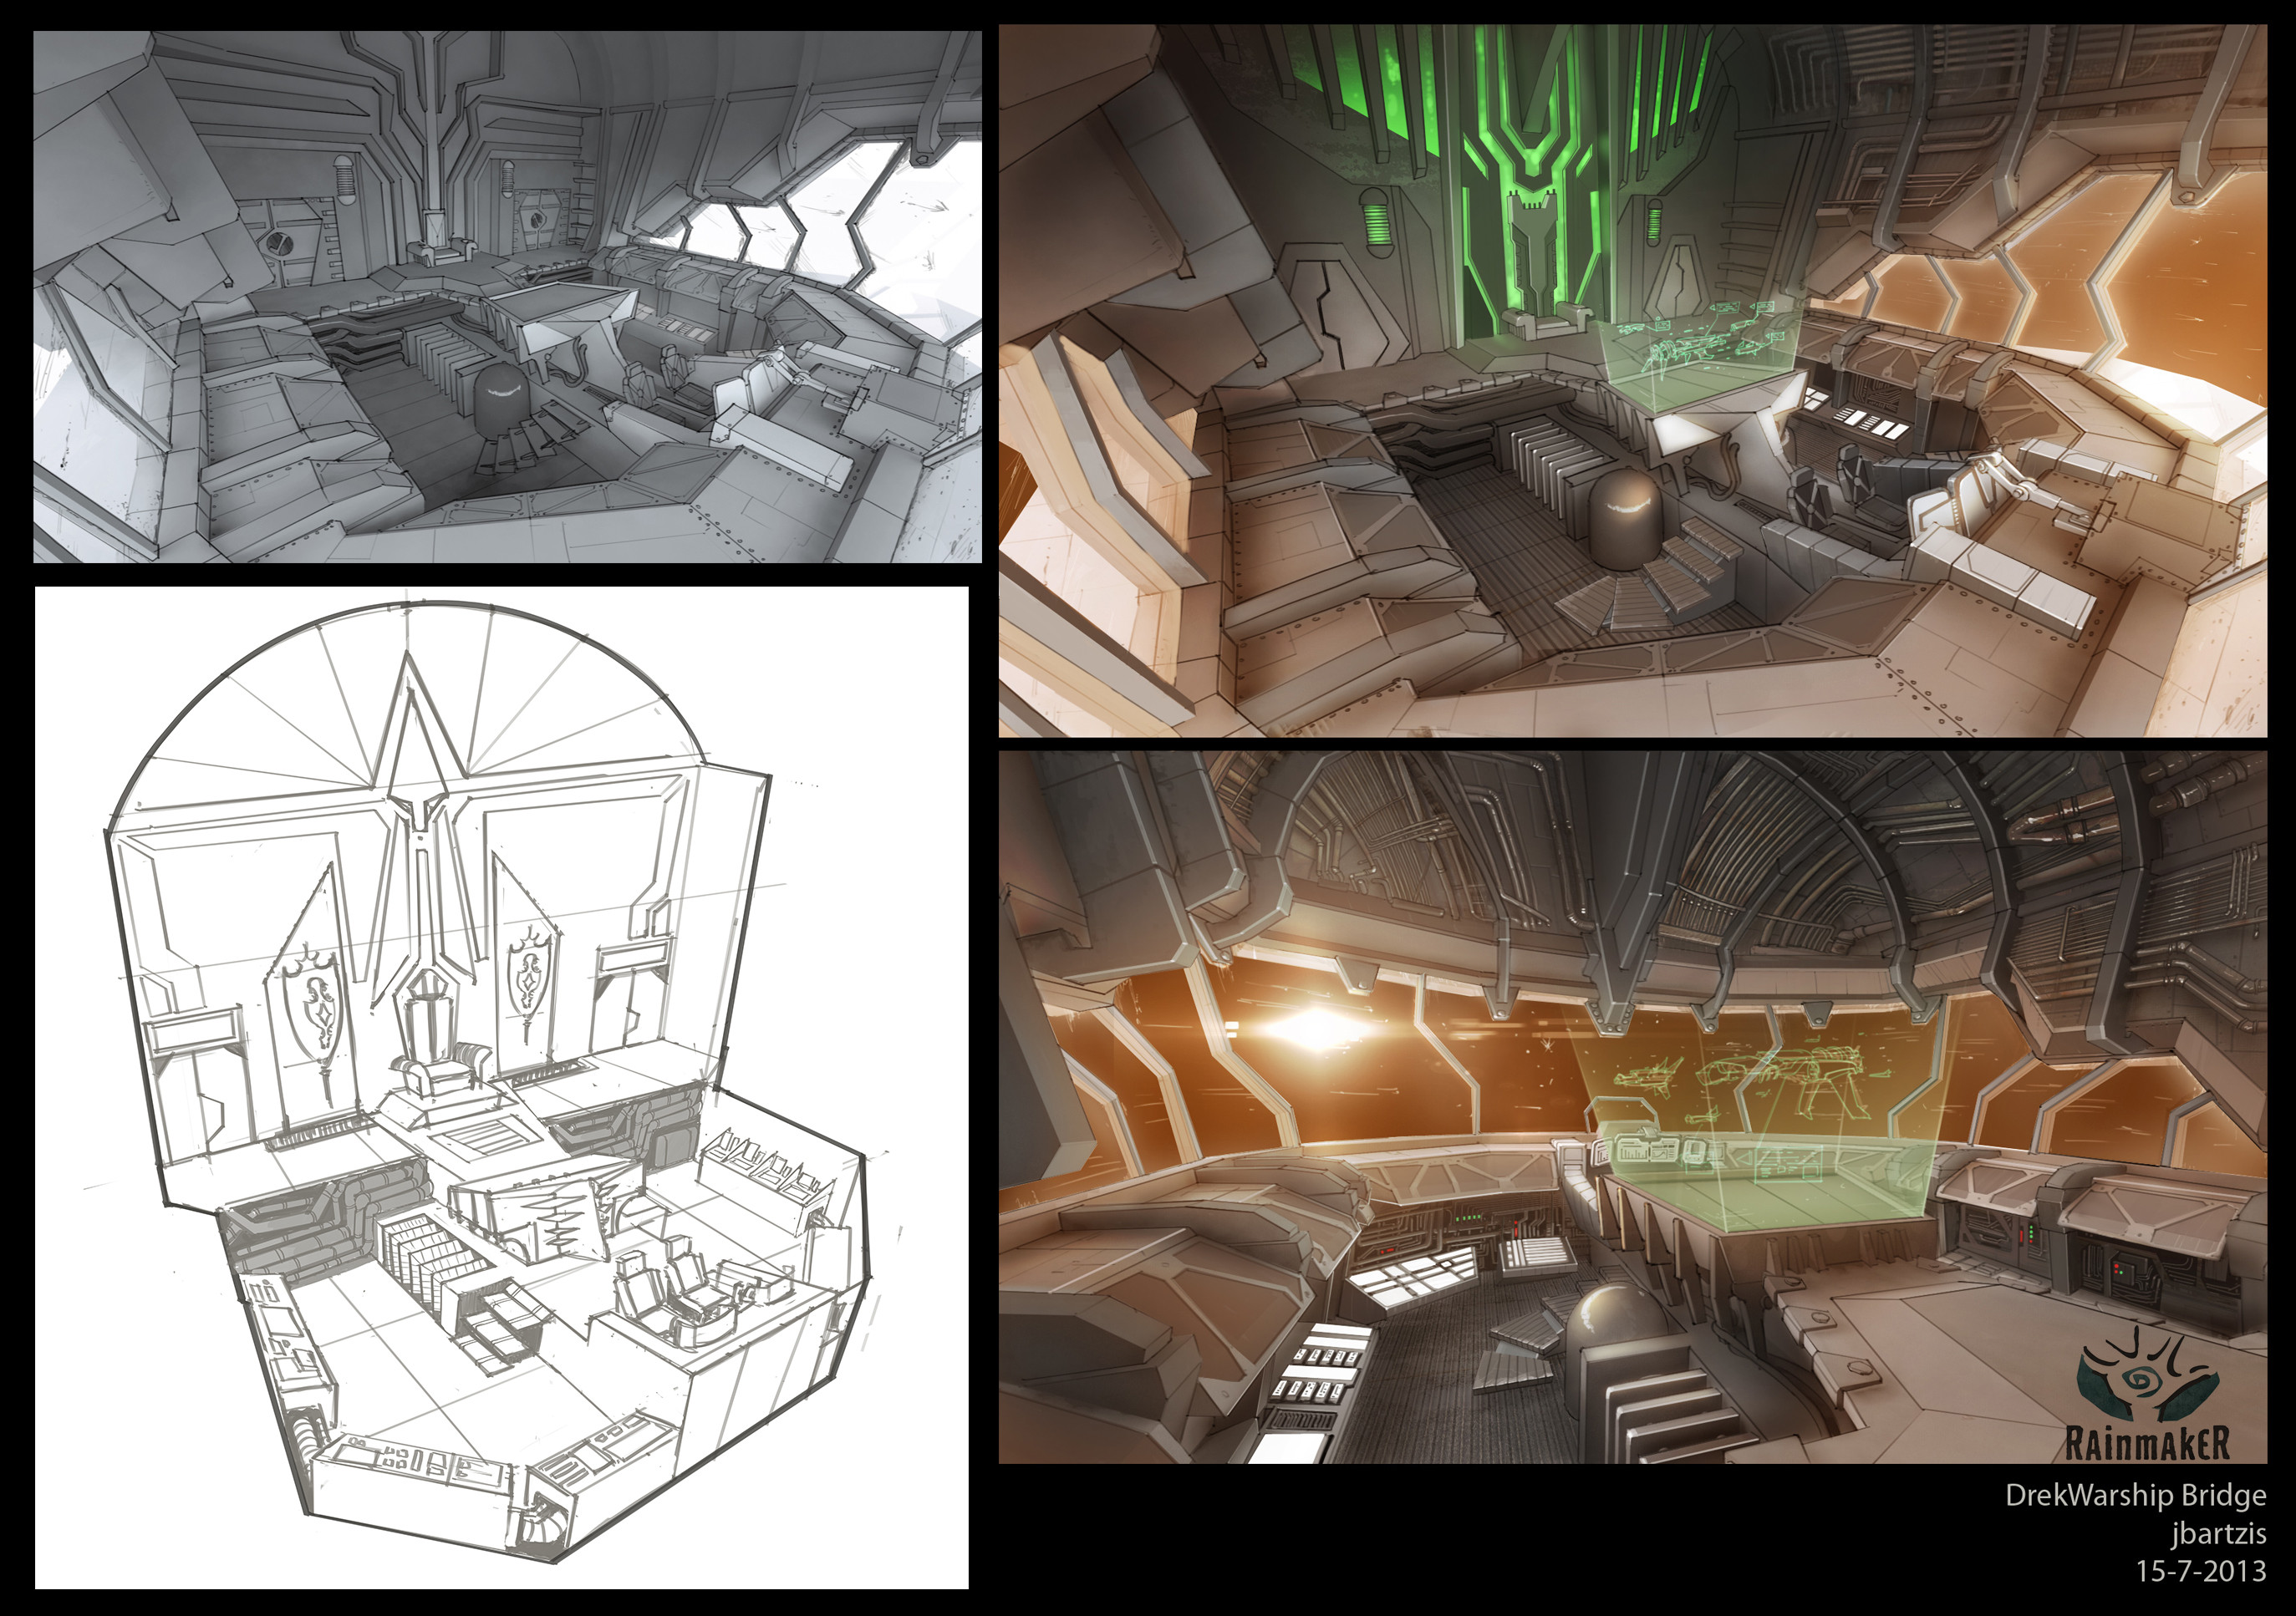 Interior set design of the Drek Warship cockpit area. and some early drawings